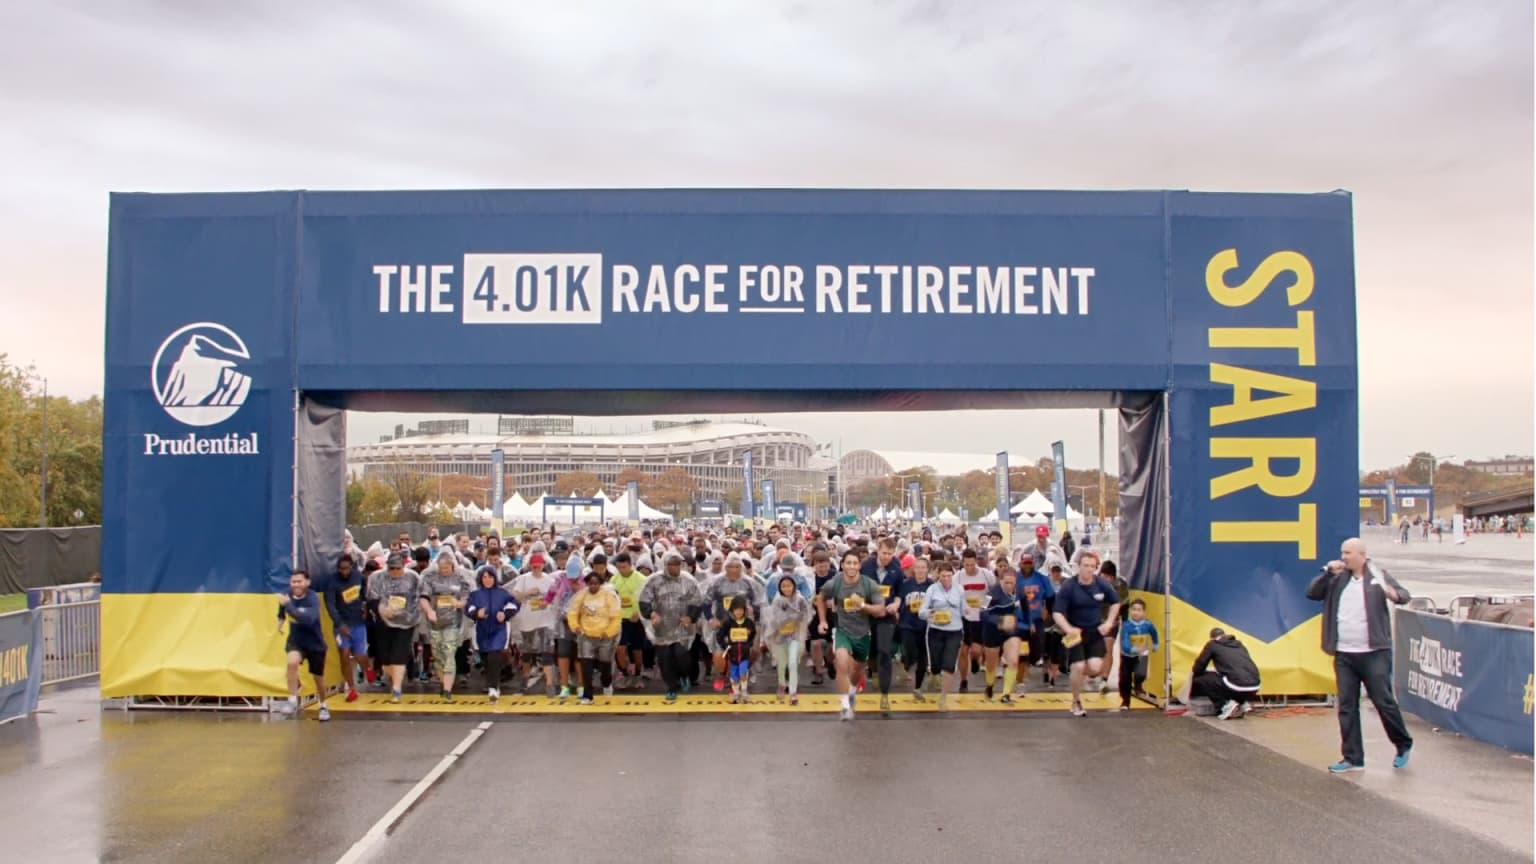 Prudential - The 4.01K Race for Retirement